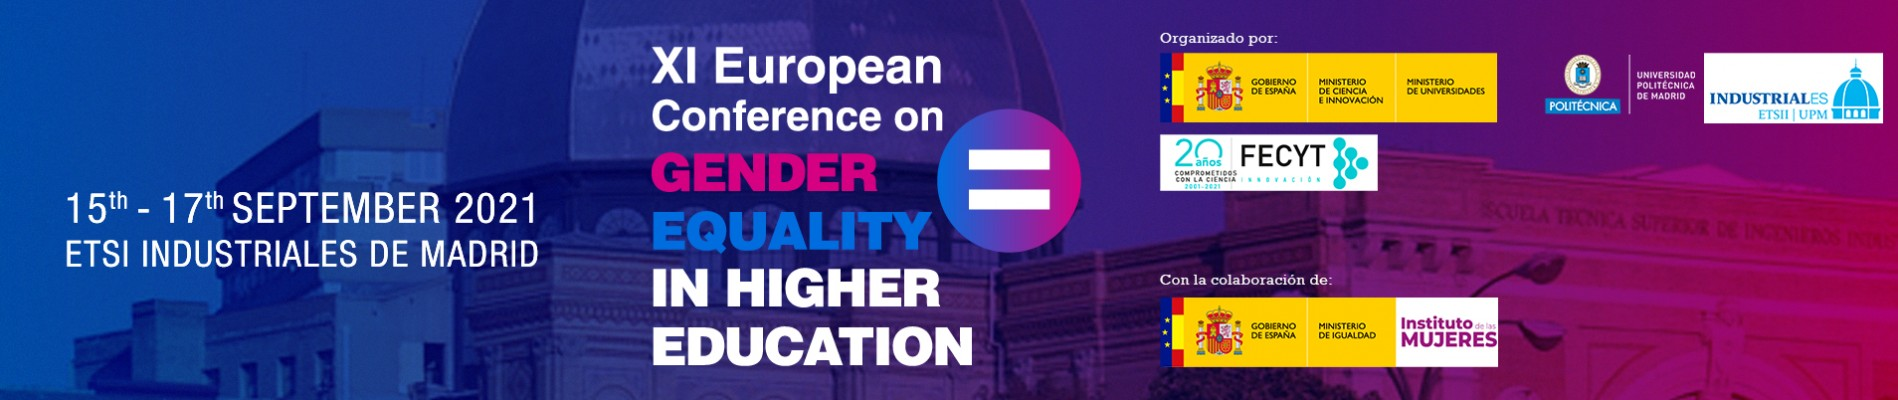 Banner 11º Congreso europeo Gender Equality in Higher Education